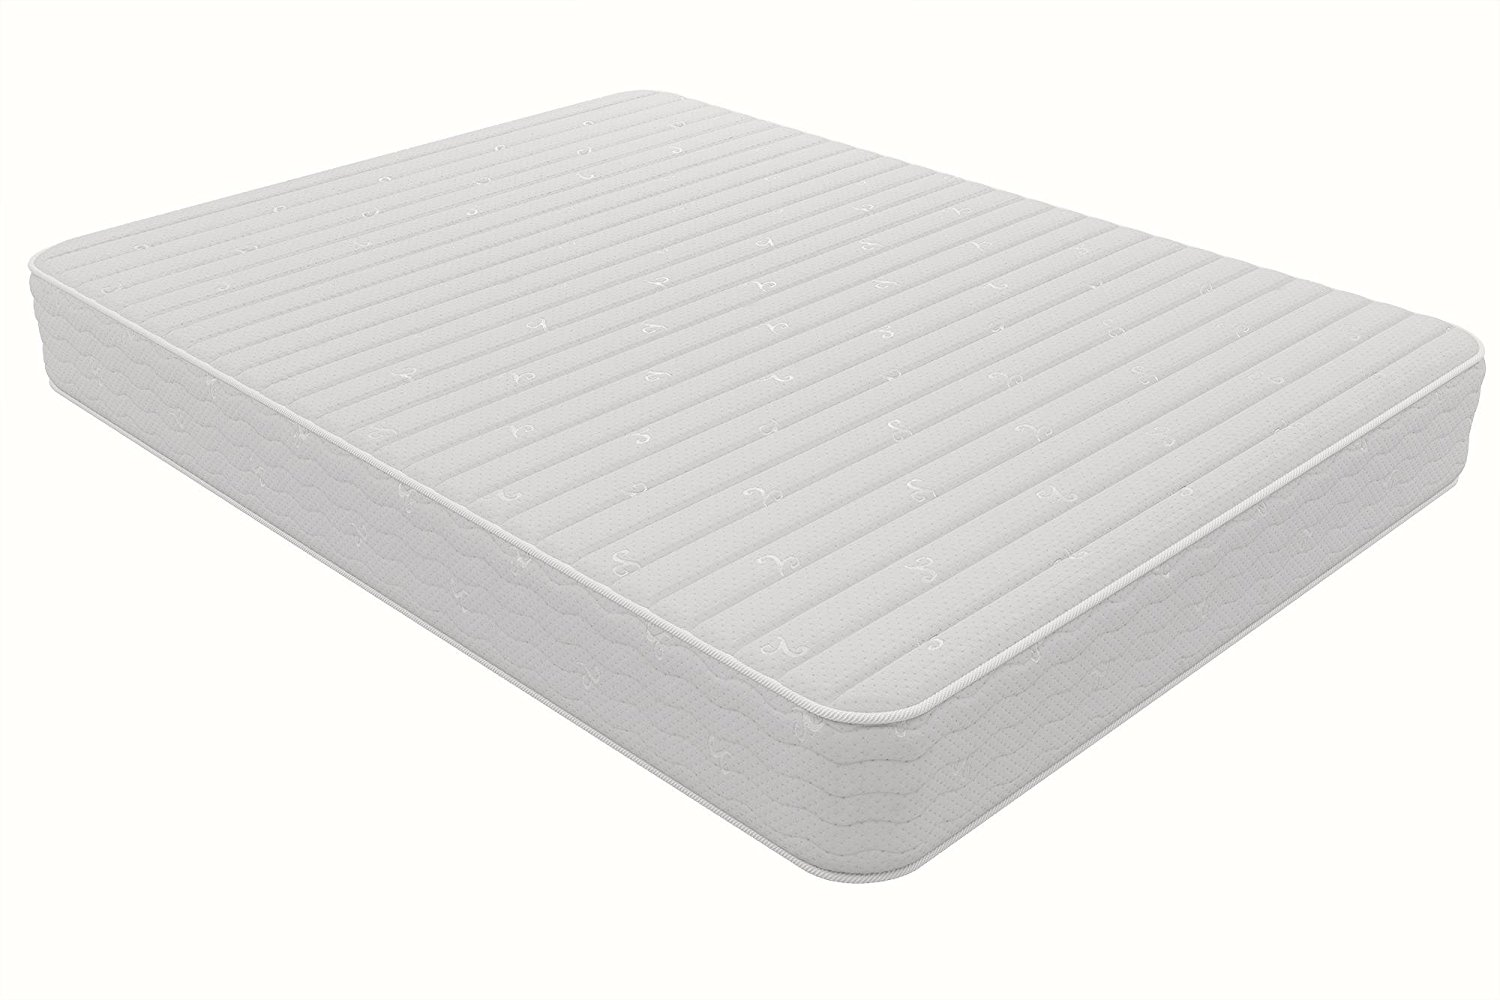 Signature Sleep Contour 8 CertiPUR-US® Memory Foam Mattress